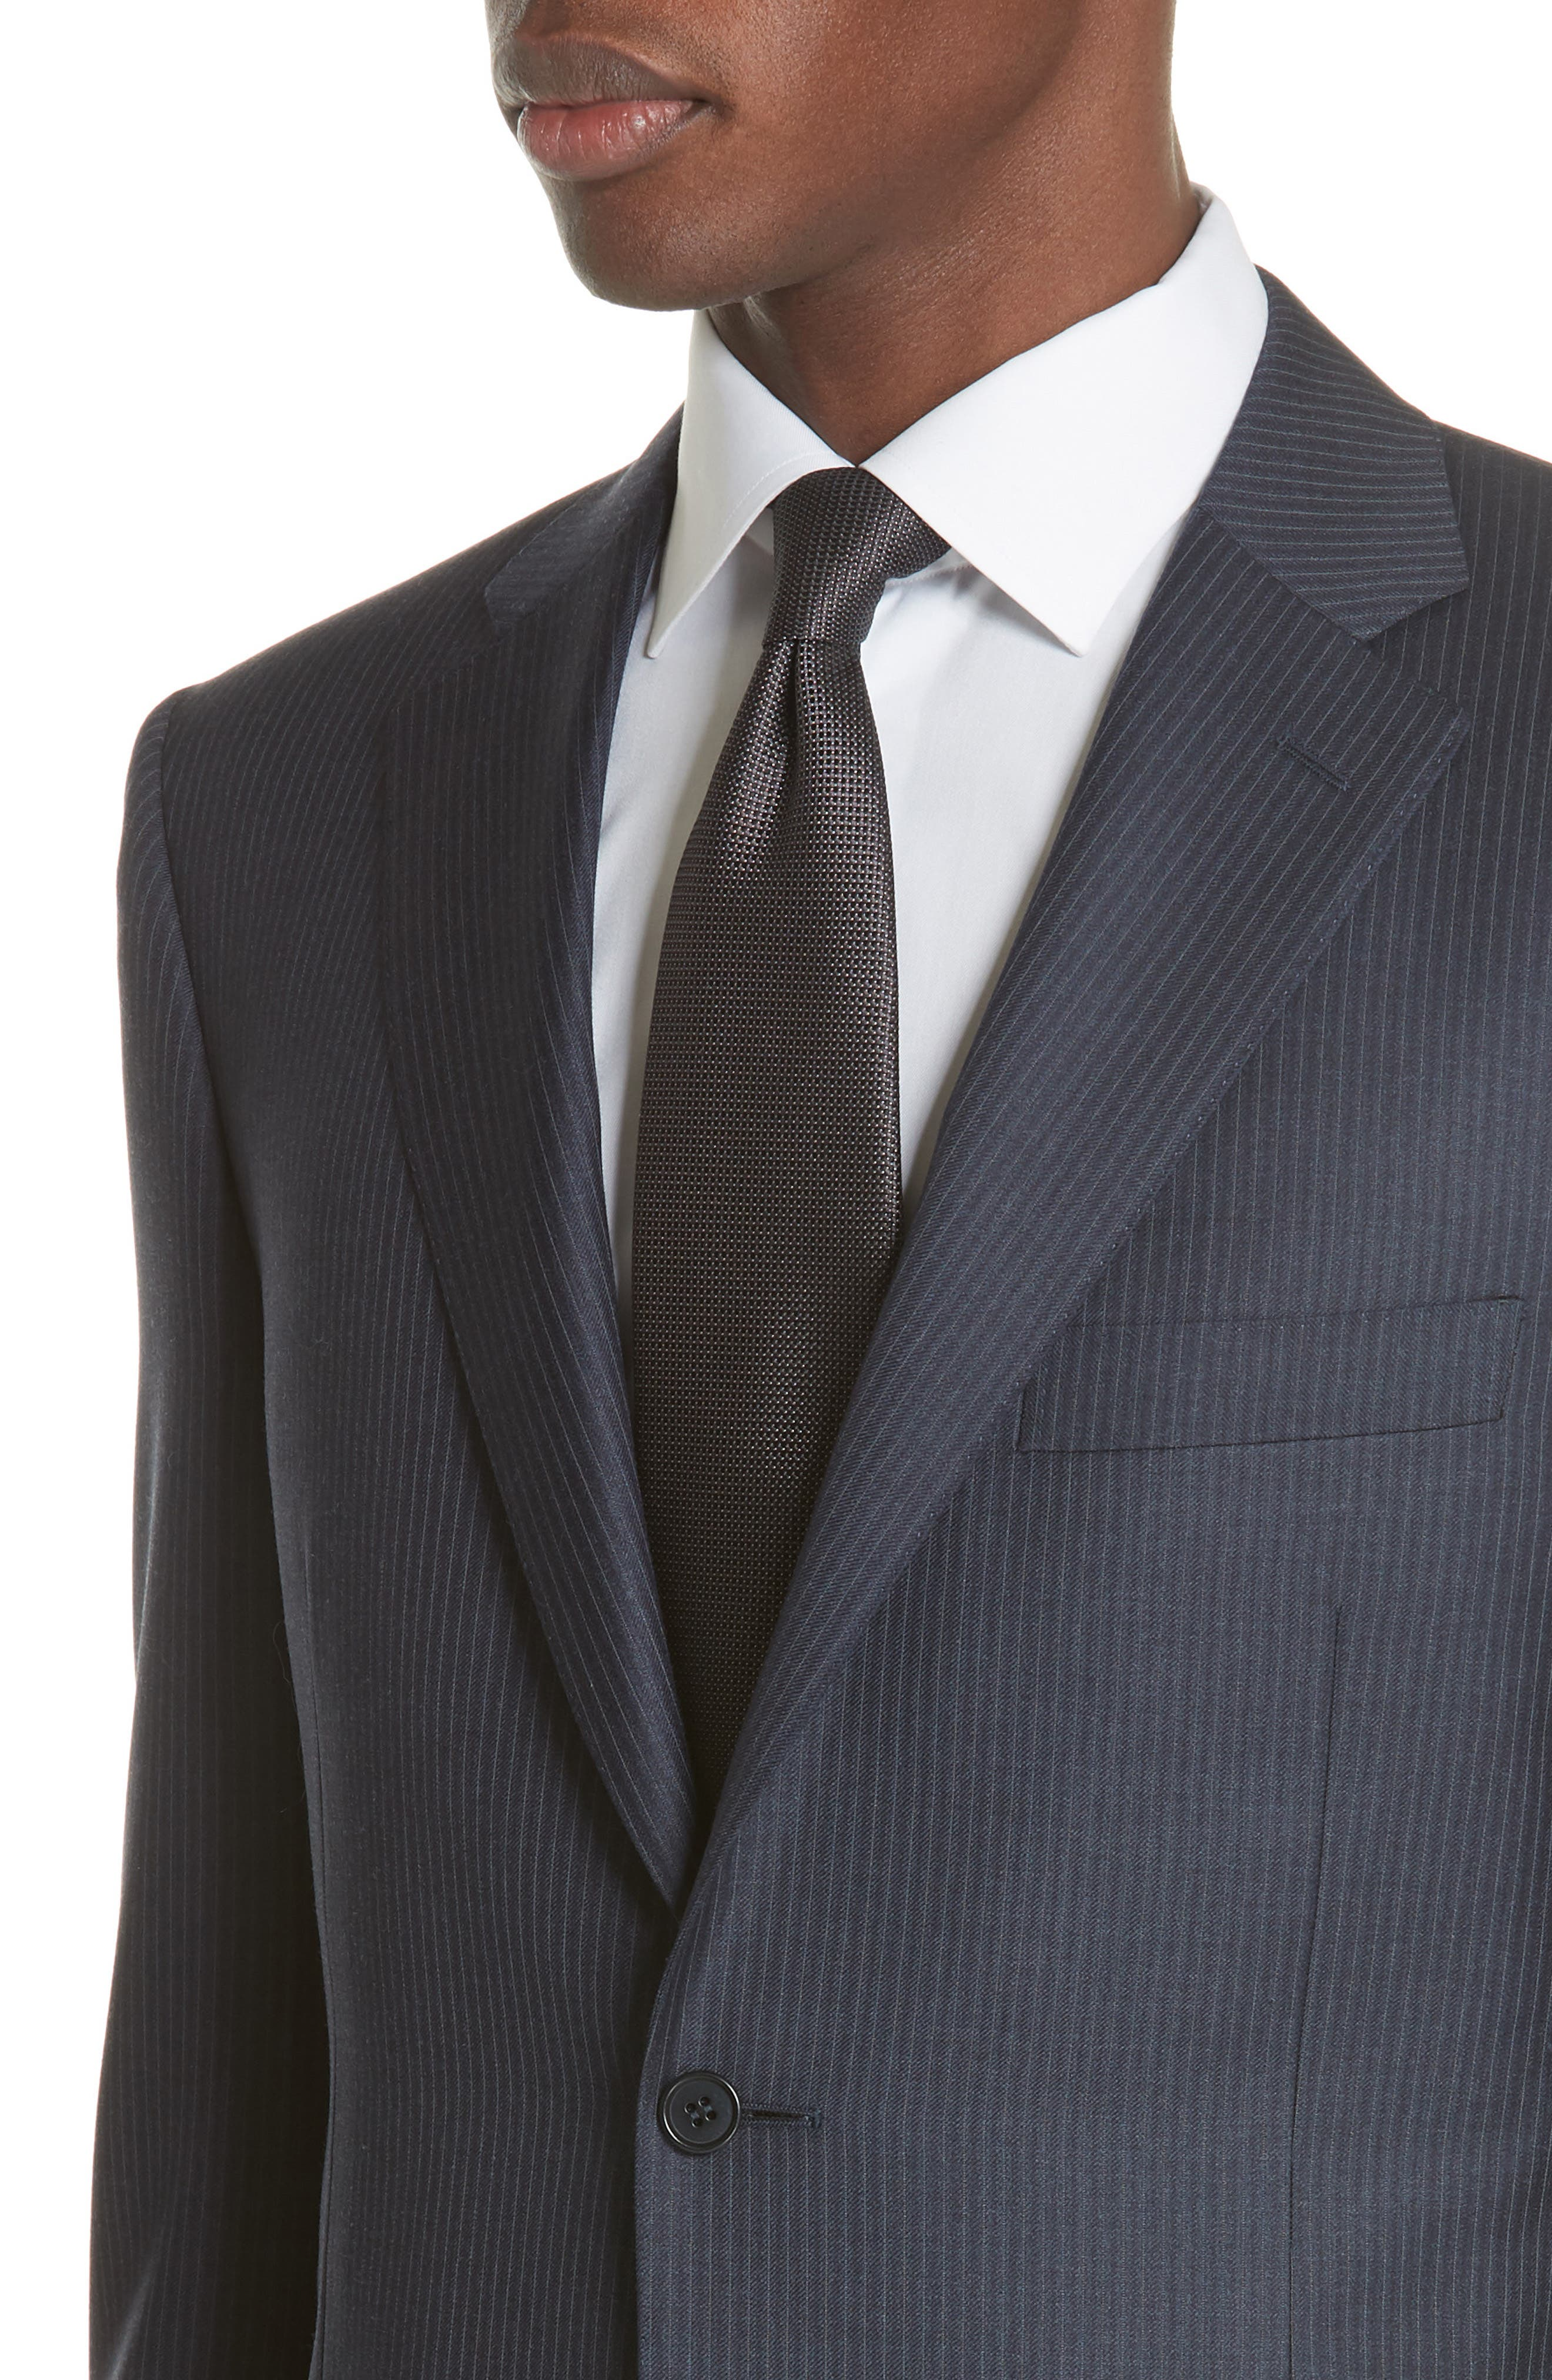 Classic Fit Pinstripe Wool Suit,                             Alternate thumbnail 4, color,                             Navy